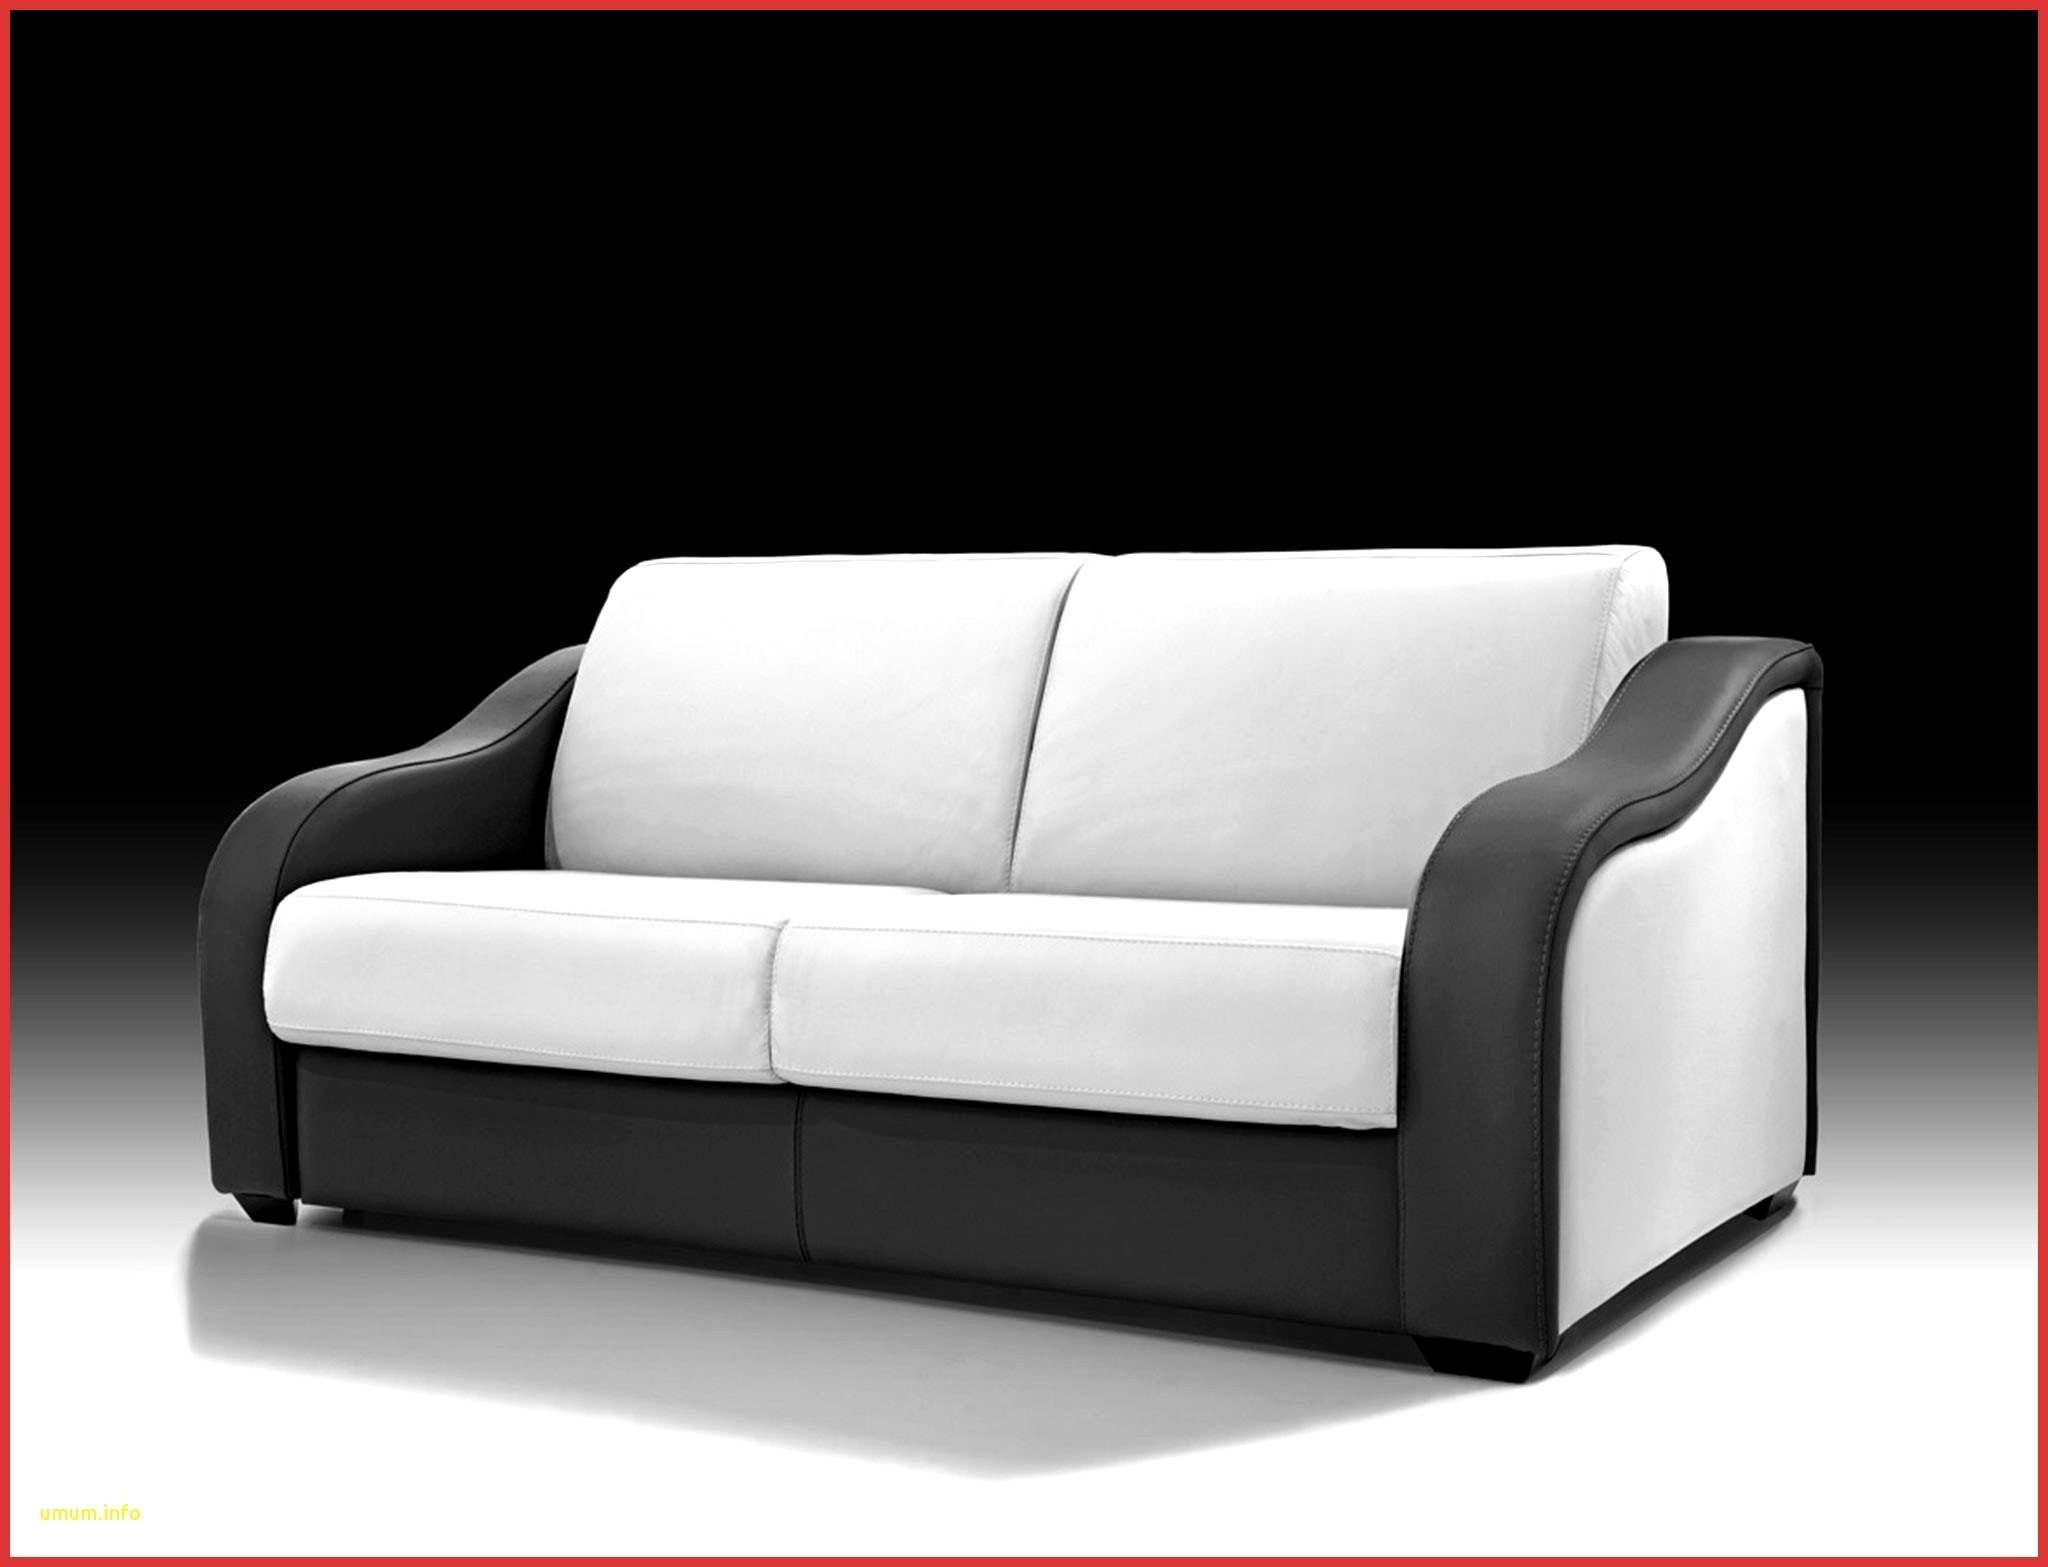 Housse Clic Clac Fly Luxe Image Canapé Clic Clac Fly Luxe Canap Design D Angle Elegant Canape Cuir